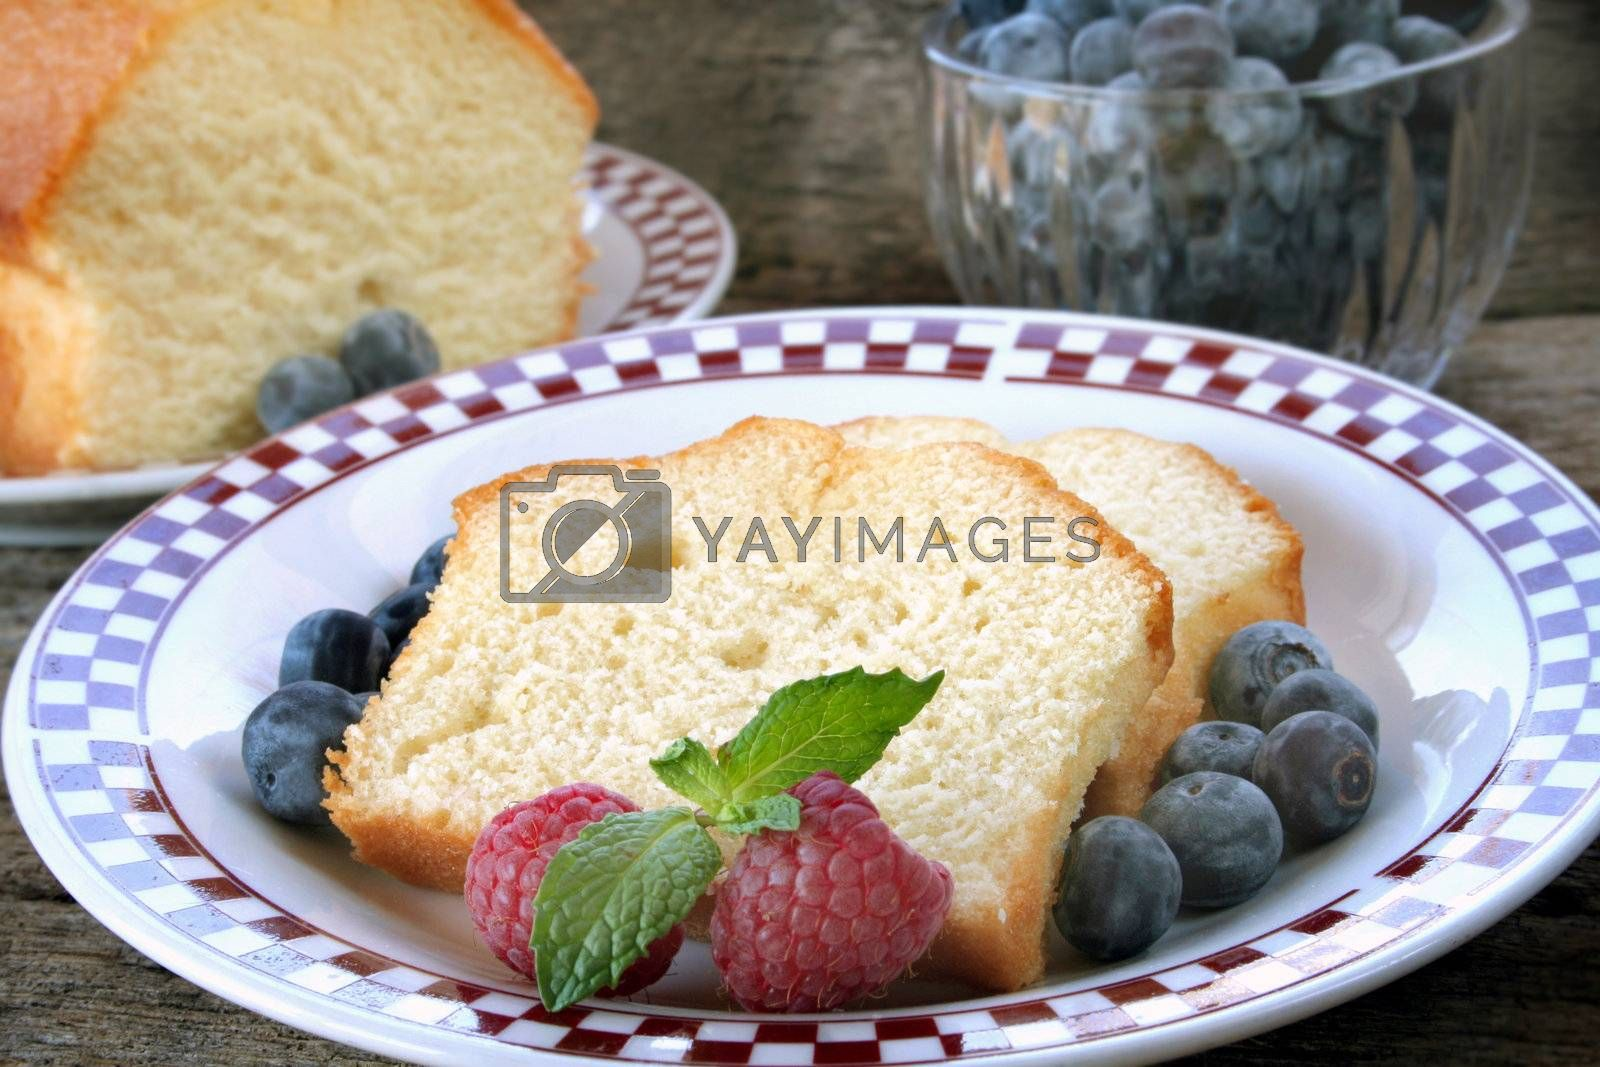 Slices of pound cake with fresh fruit served on a plate.